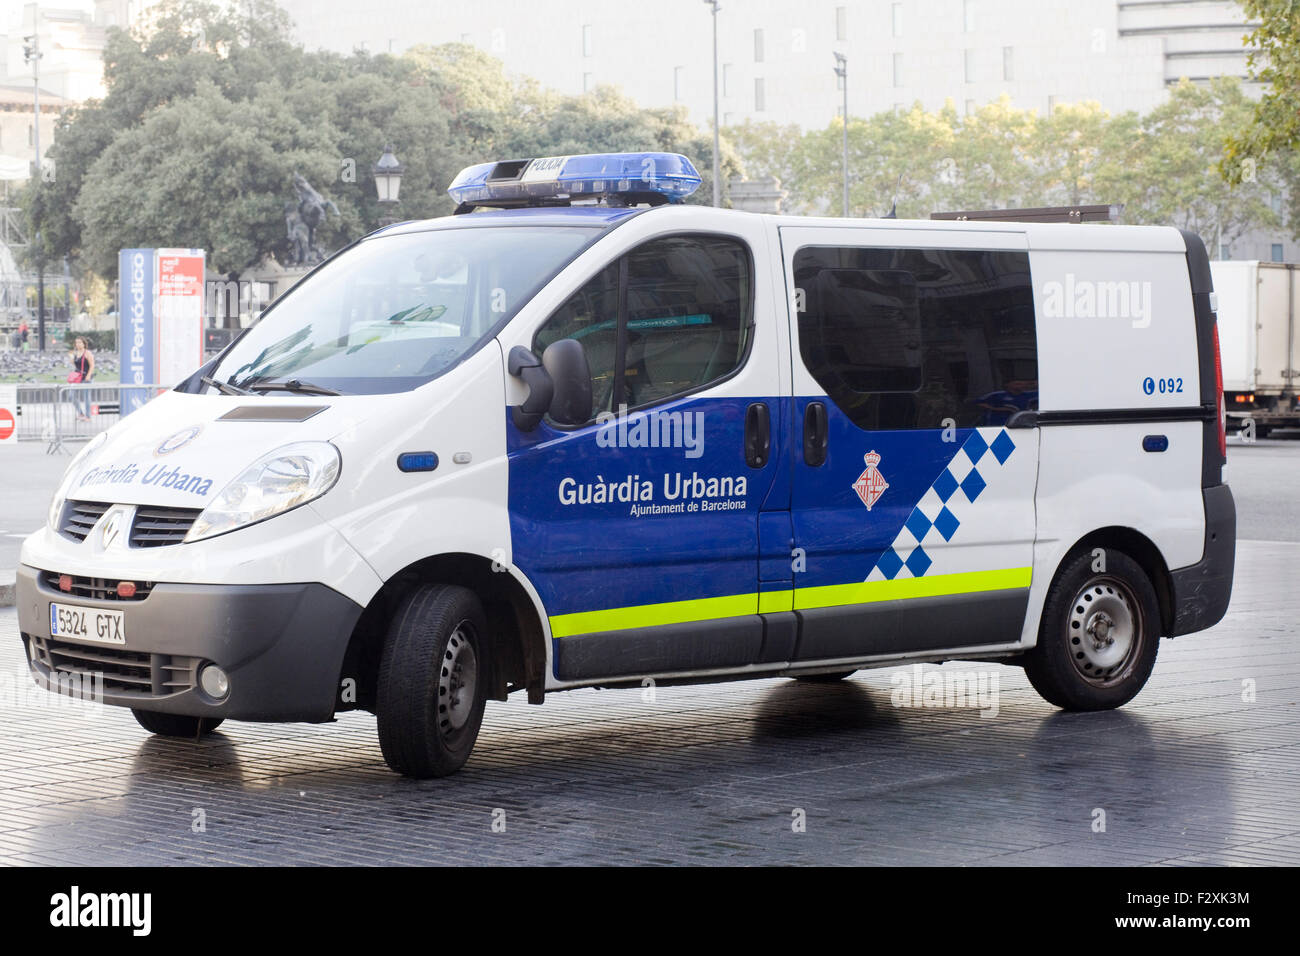 Guardia Urbana Police vehicle Parked on the street in Barcelona Spain - Stock Image